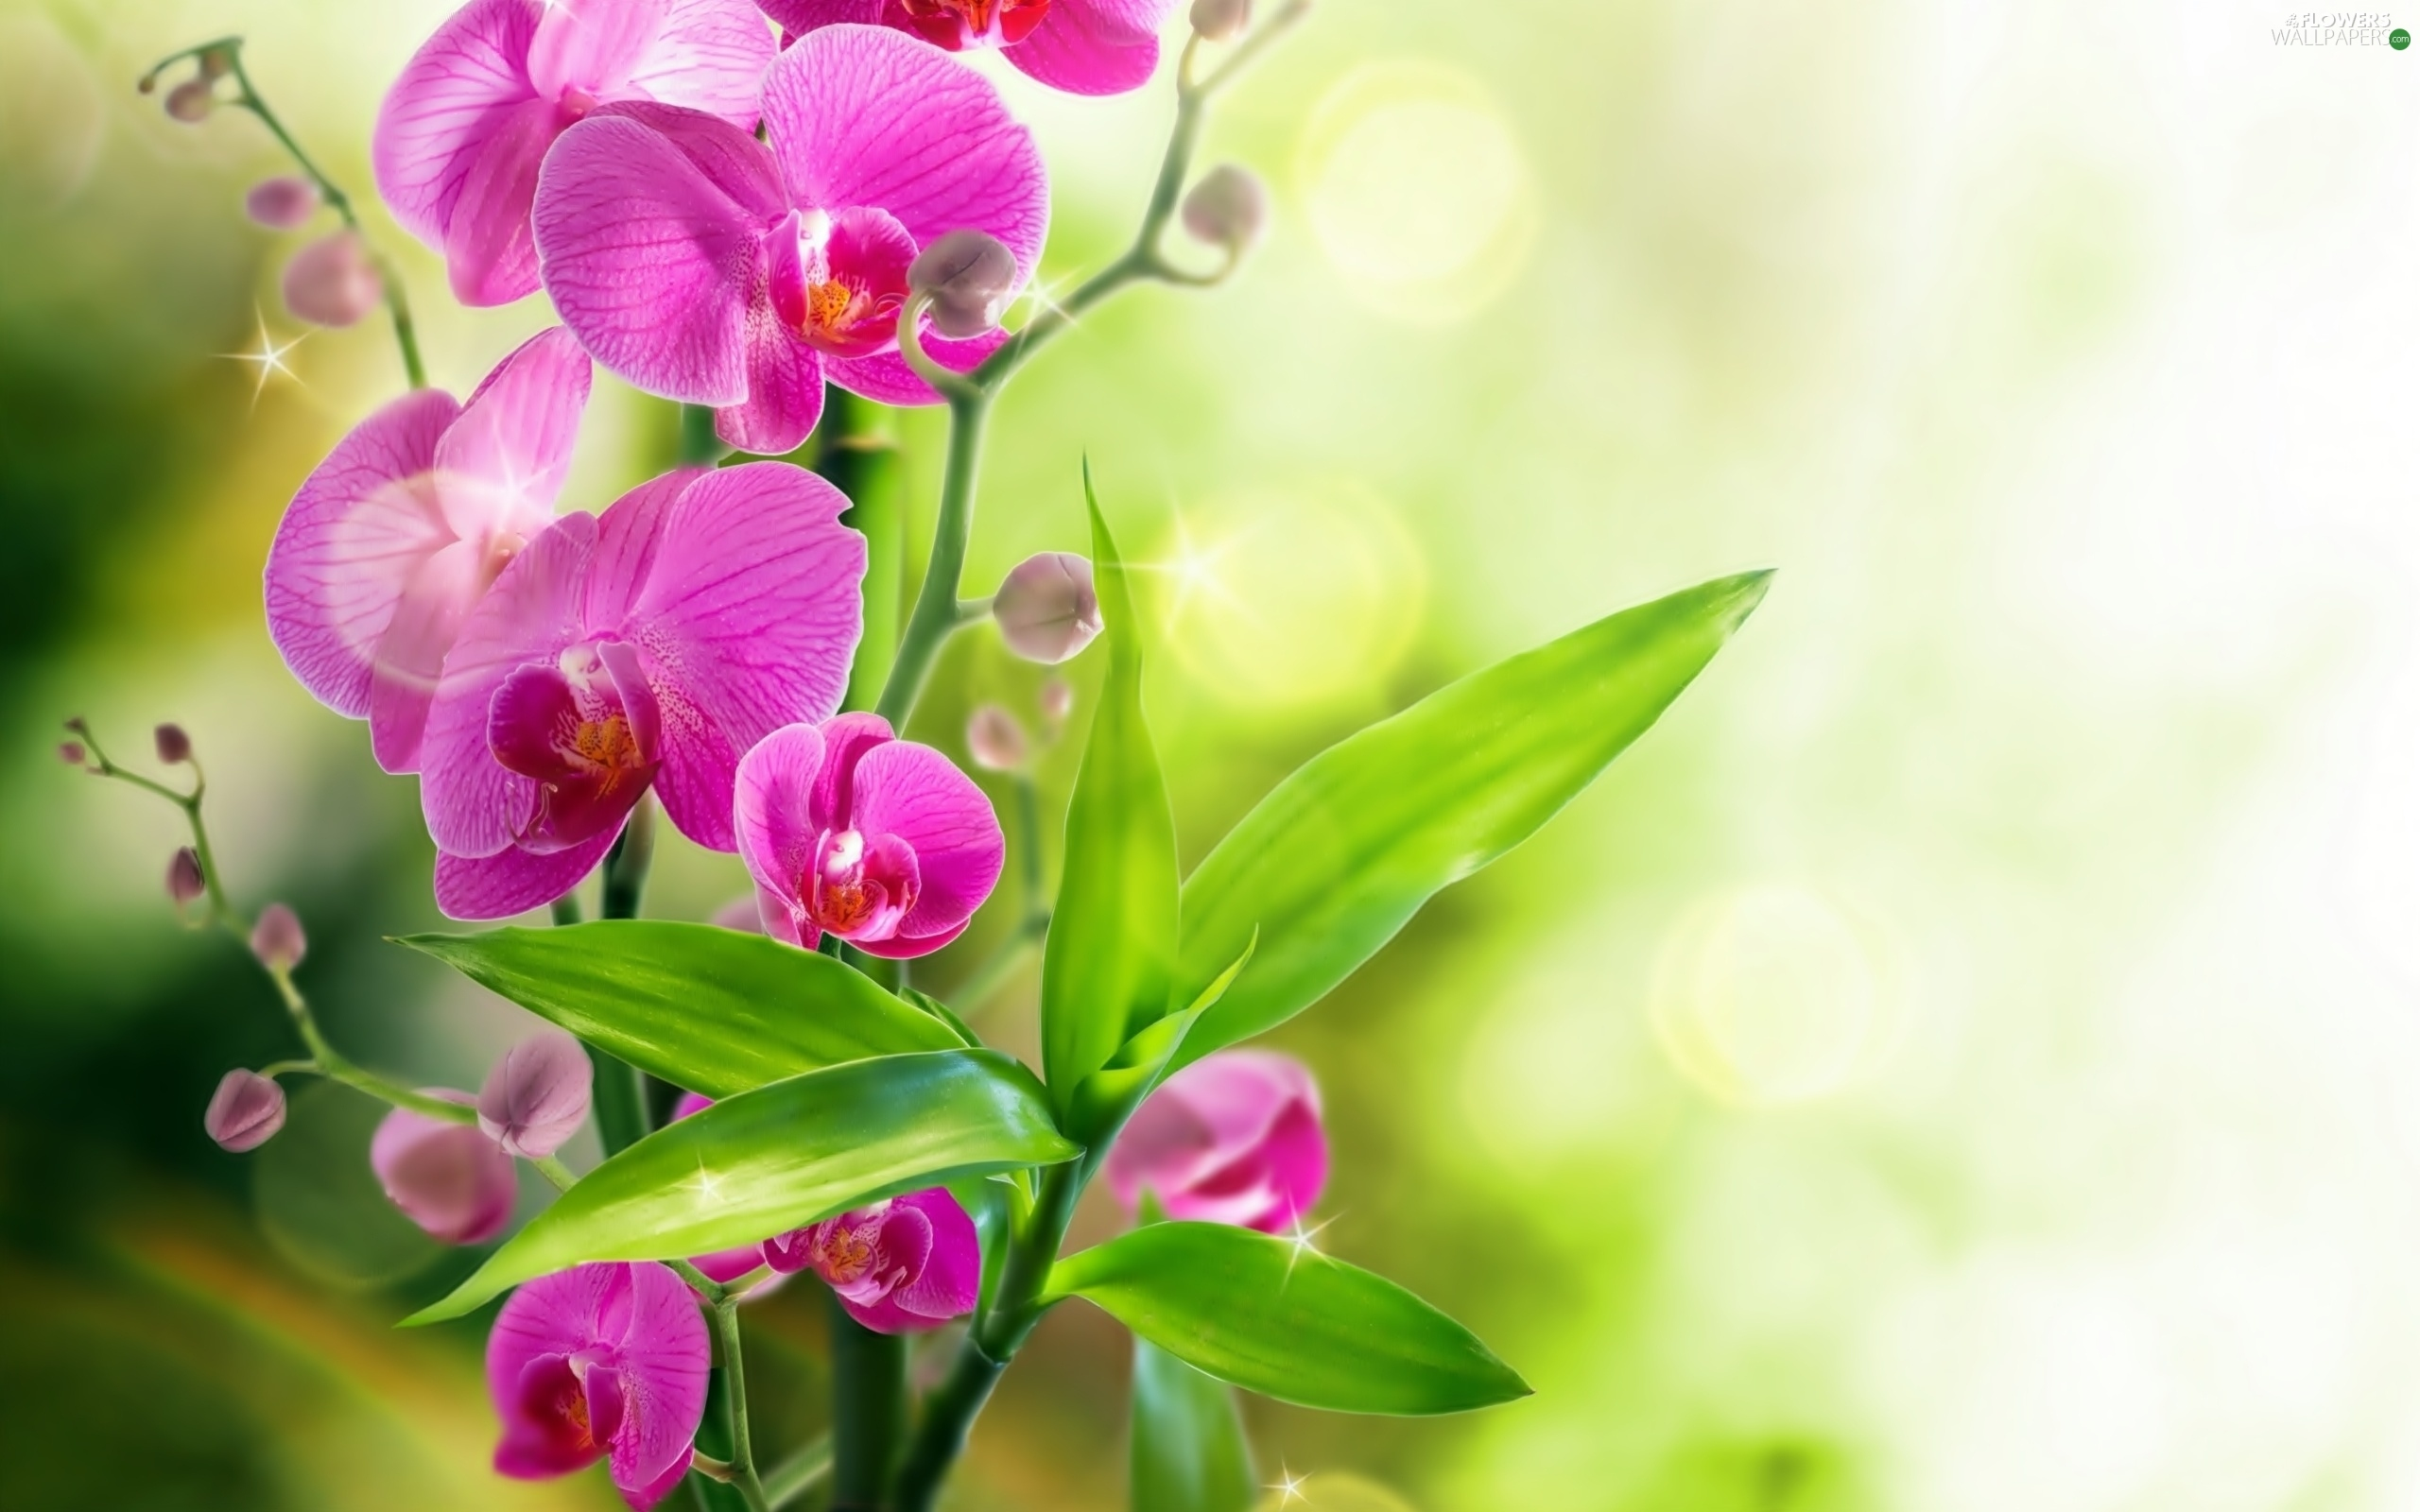 leaf orchid flowers flowers wallpapers 2560x1600